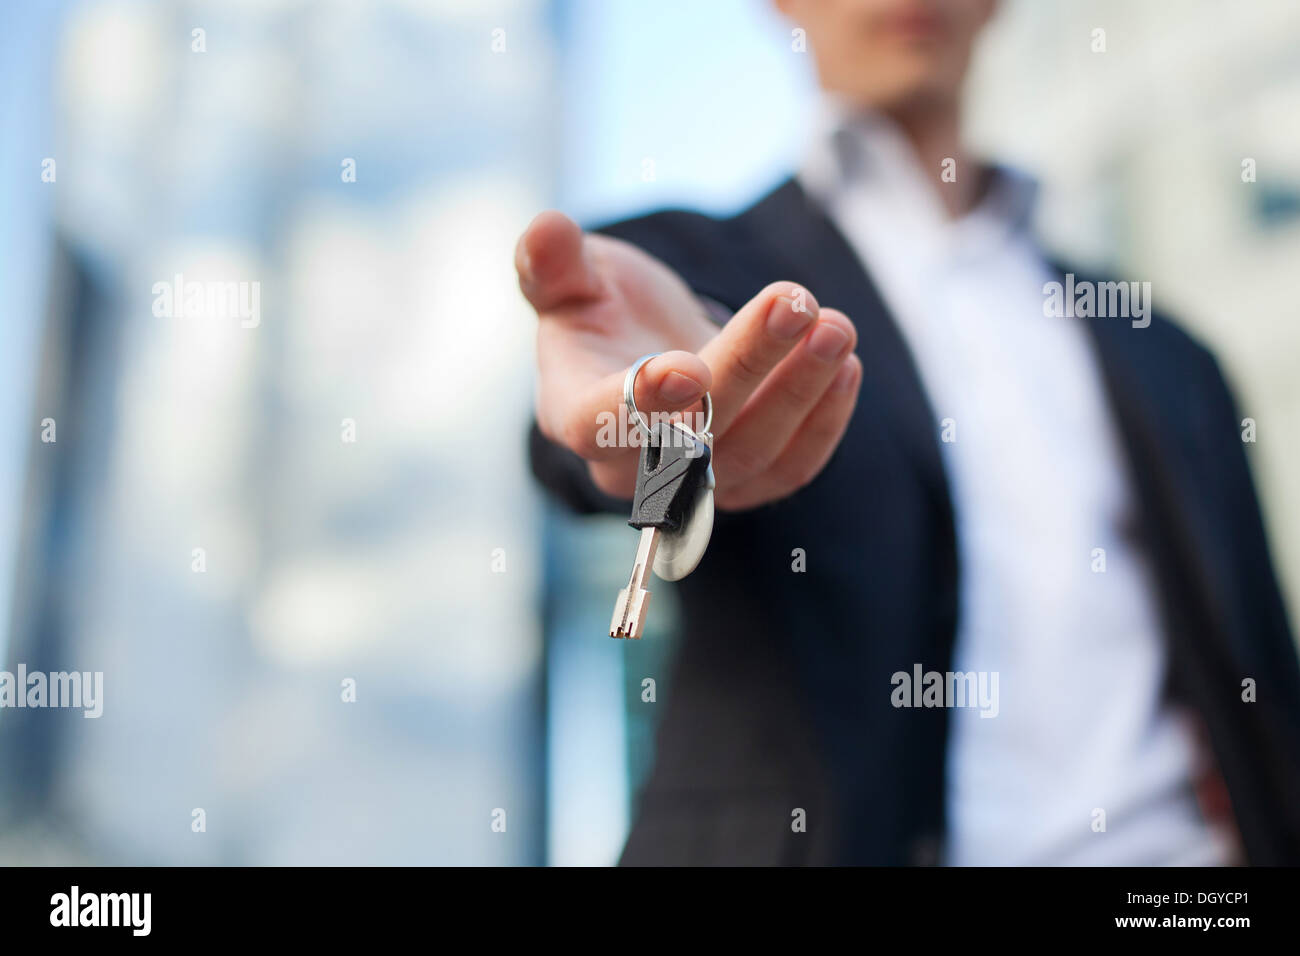 keys in the hand - Stock Image